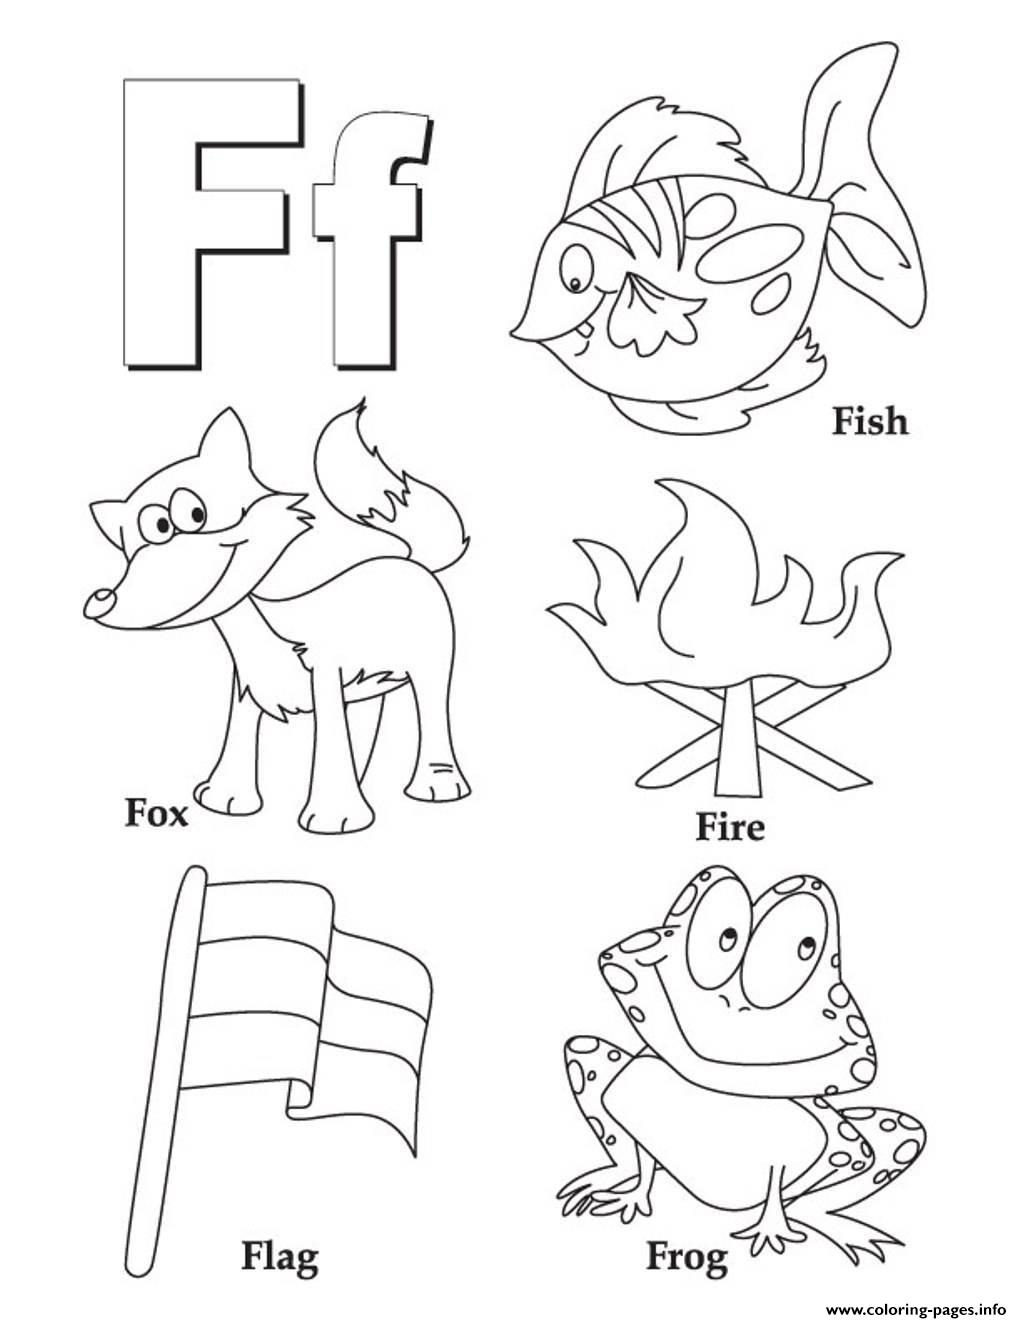 Free Alphabet S Words Of F4039 Coloring Pages Printable